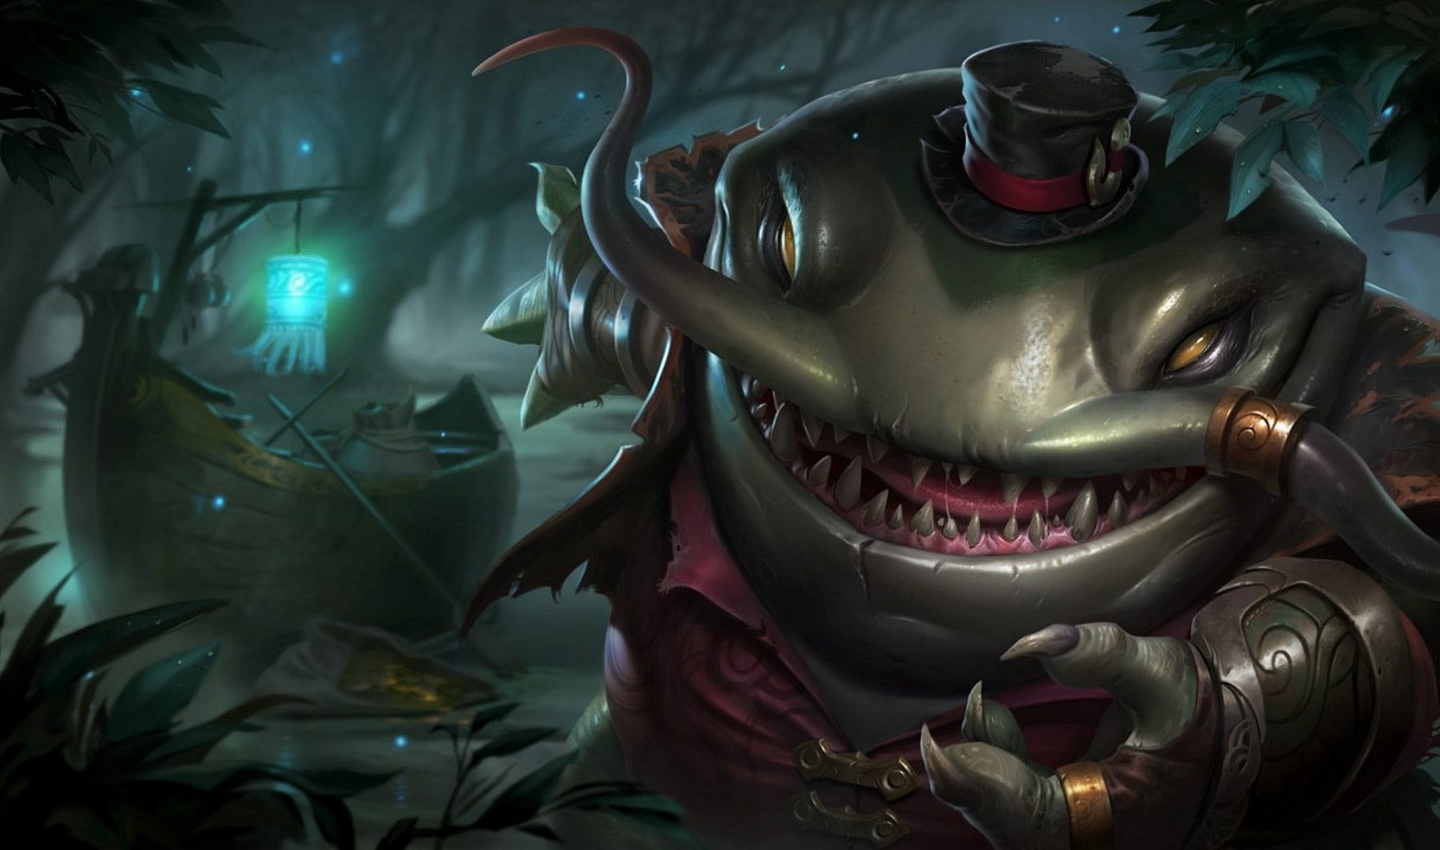 League-of-Legends-Patch-9.9-includes-huge-changes-to-Aatrox-and-Tahm-Kench